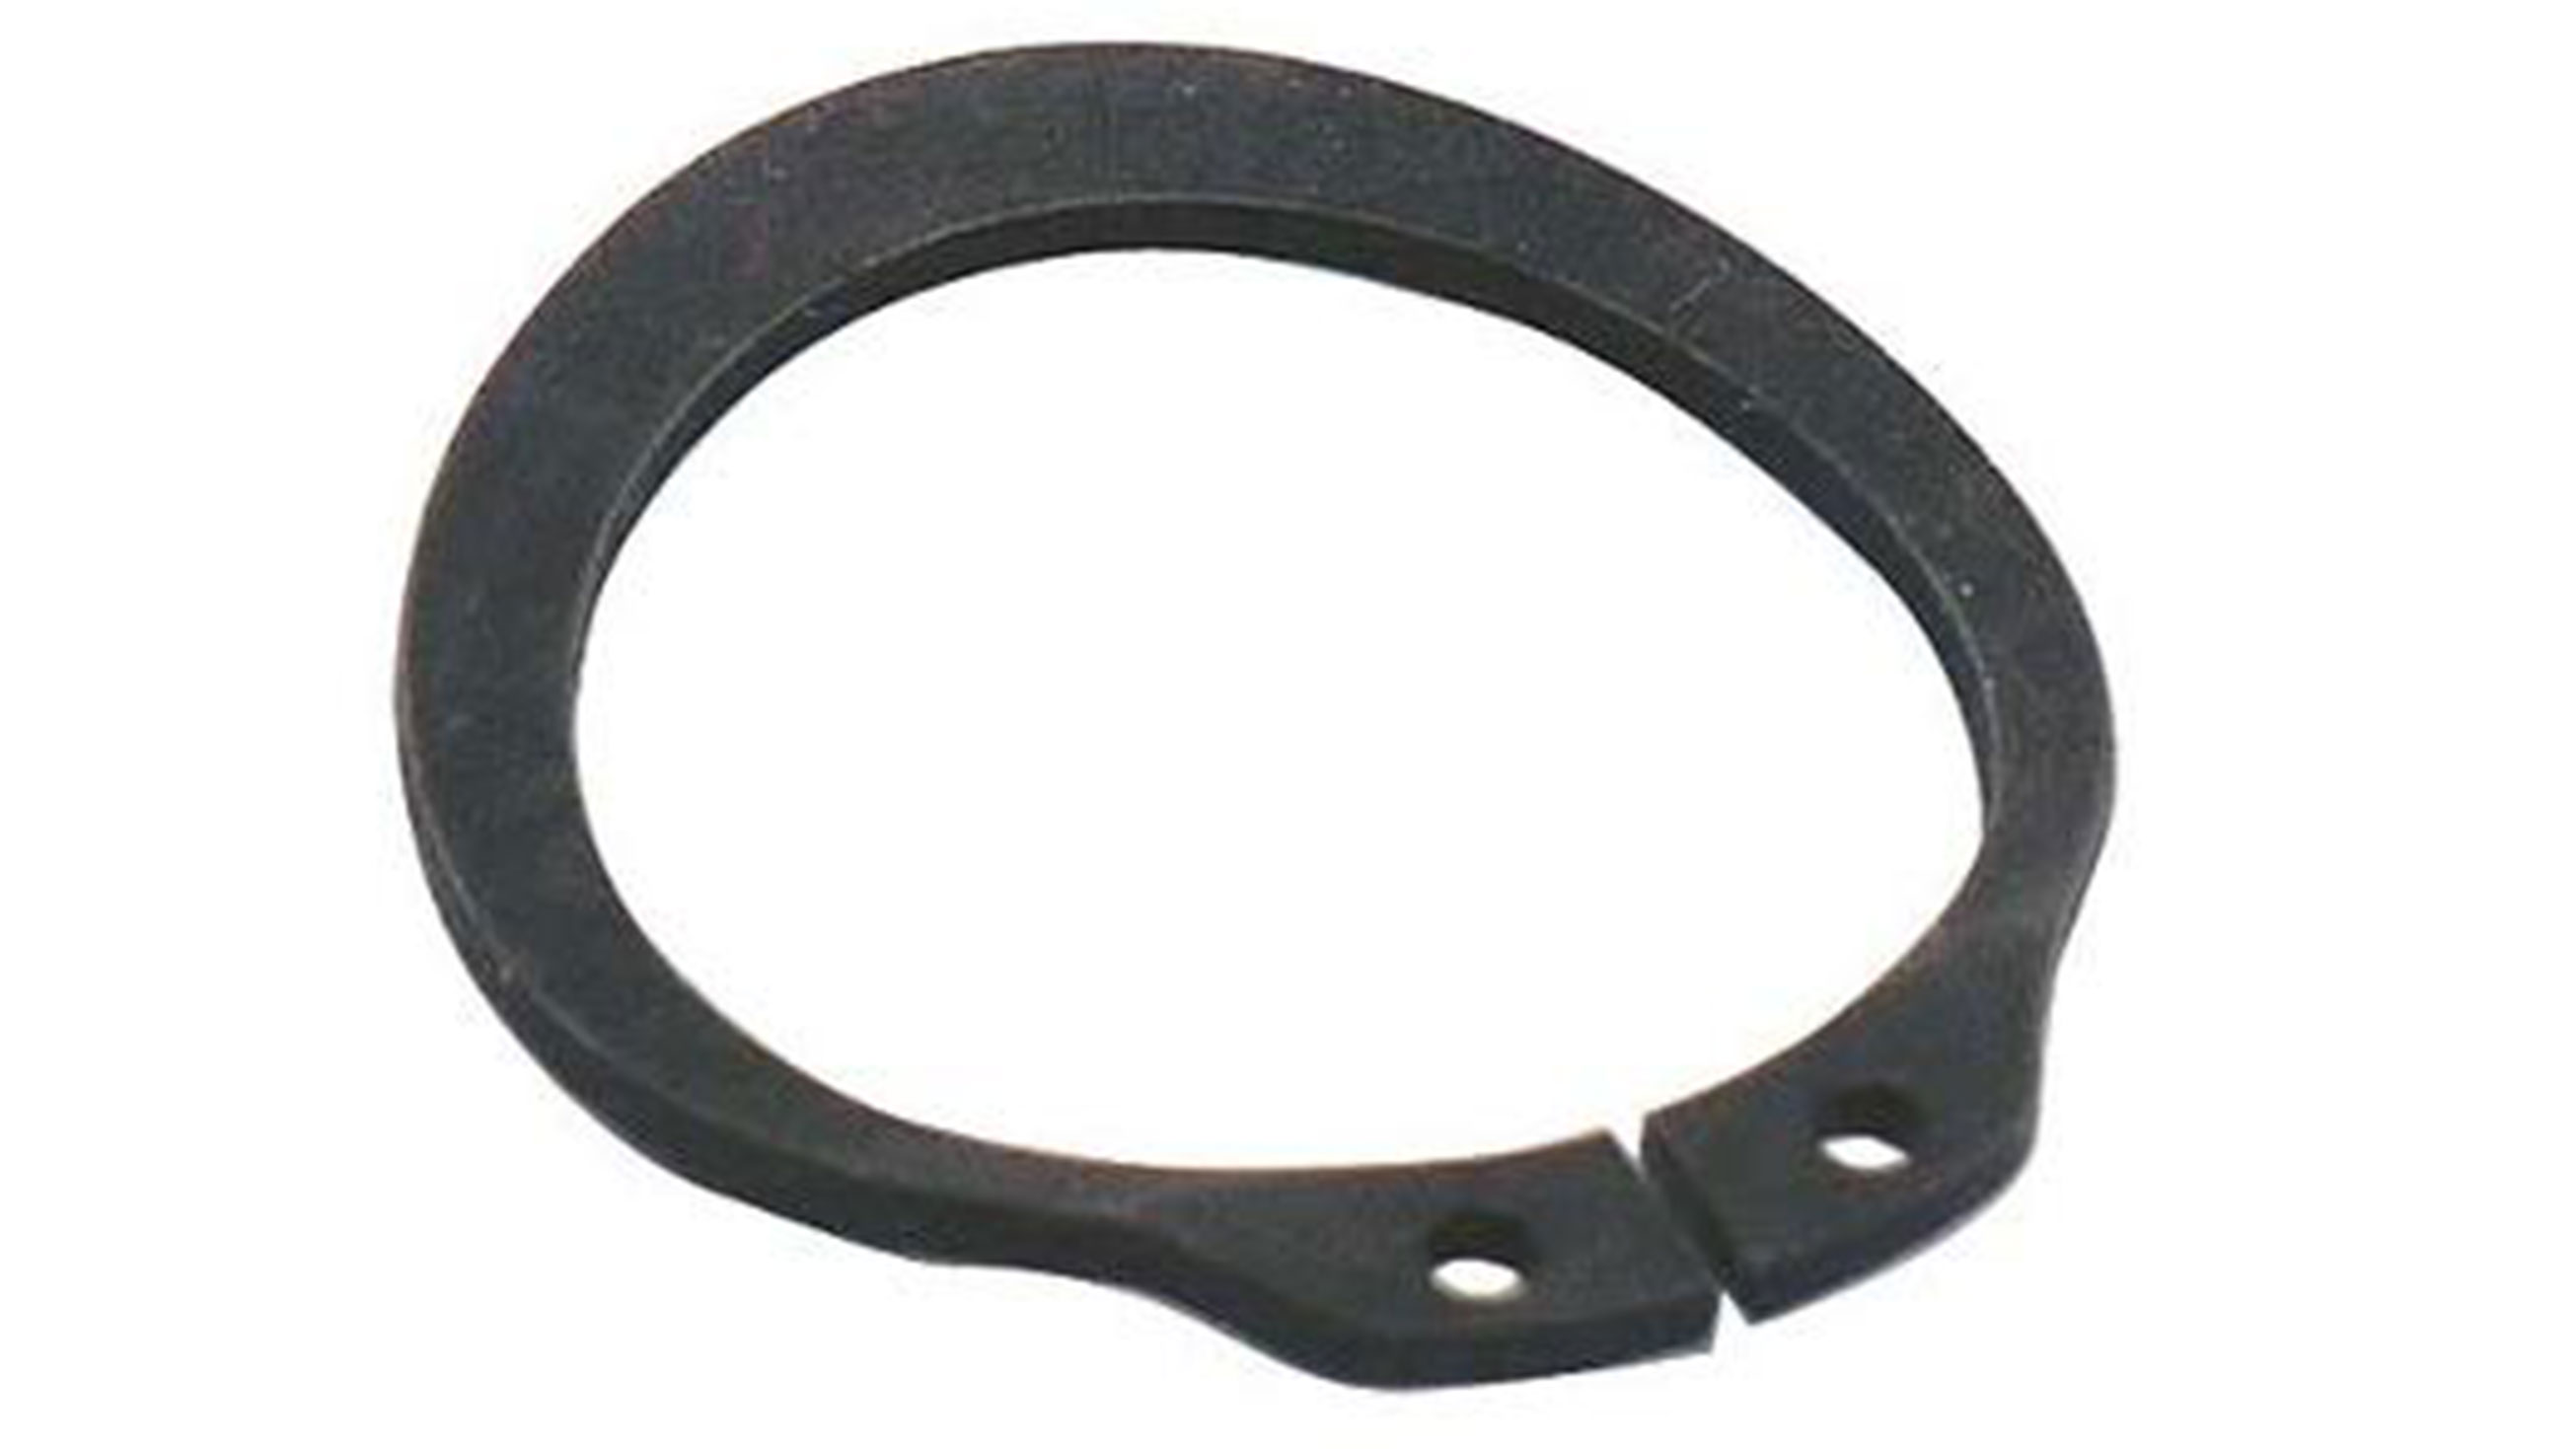 Upper Steering Column Bearing Snap Ring- 74-77 Ford Bronco